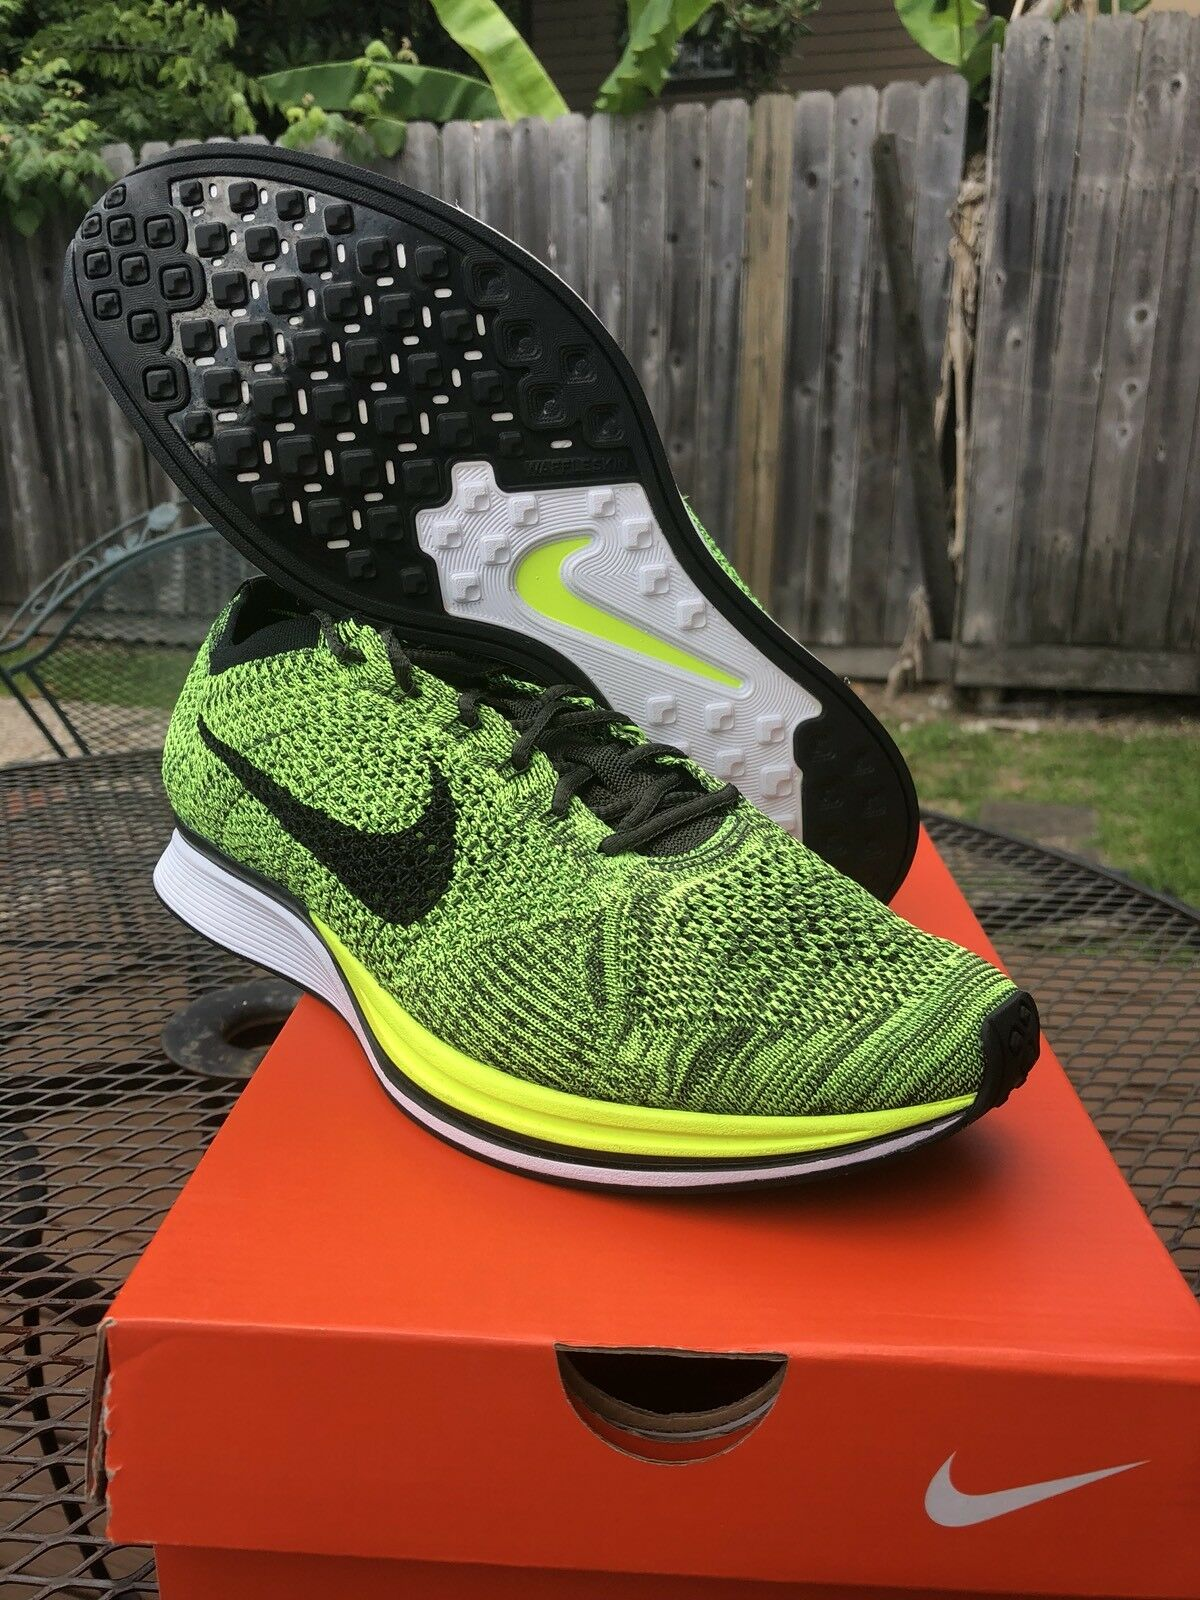 New DS 11.5 Nike Flyknit Racer Volt Neon Green Black Free Air Max Running